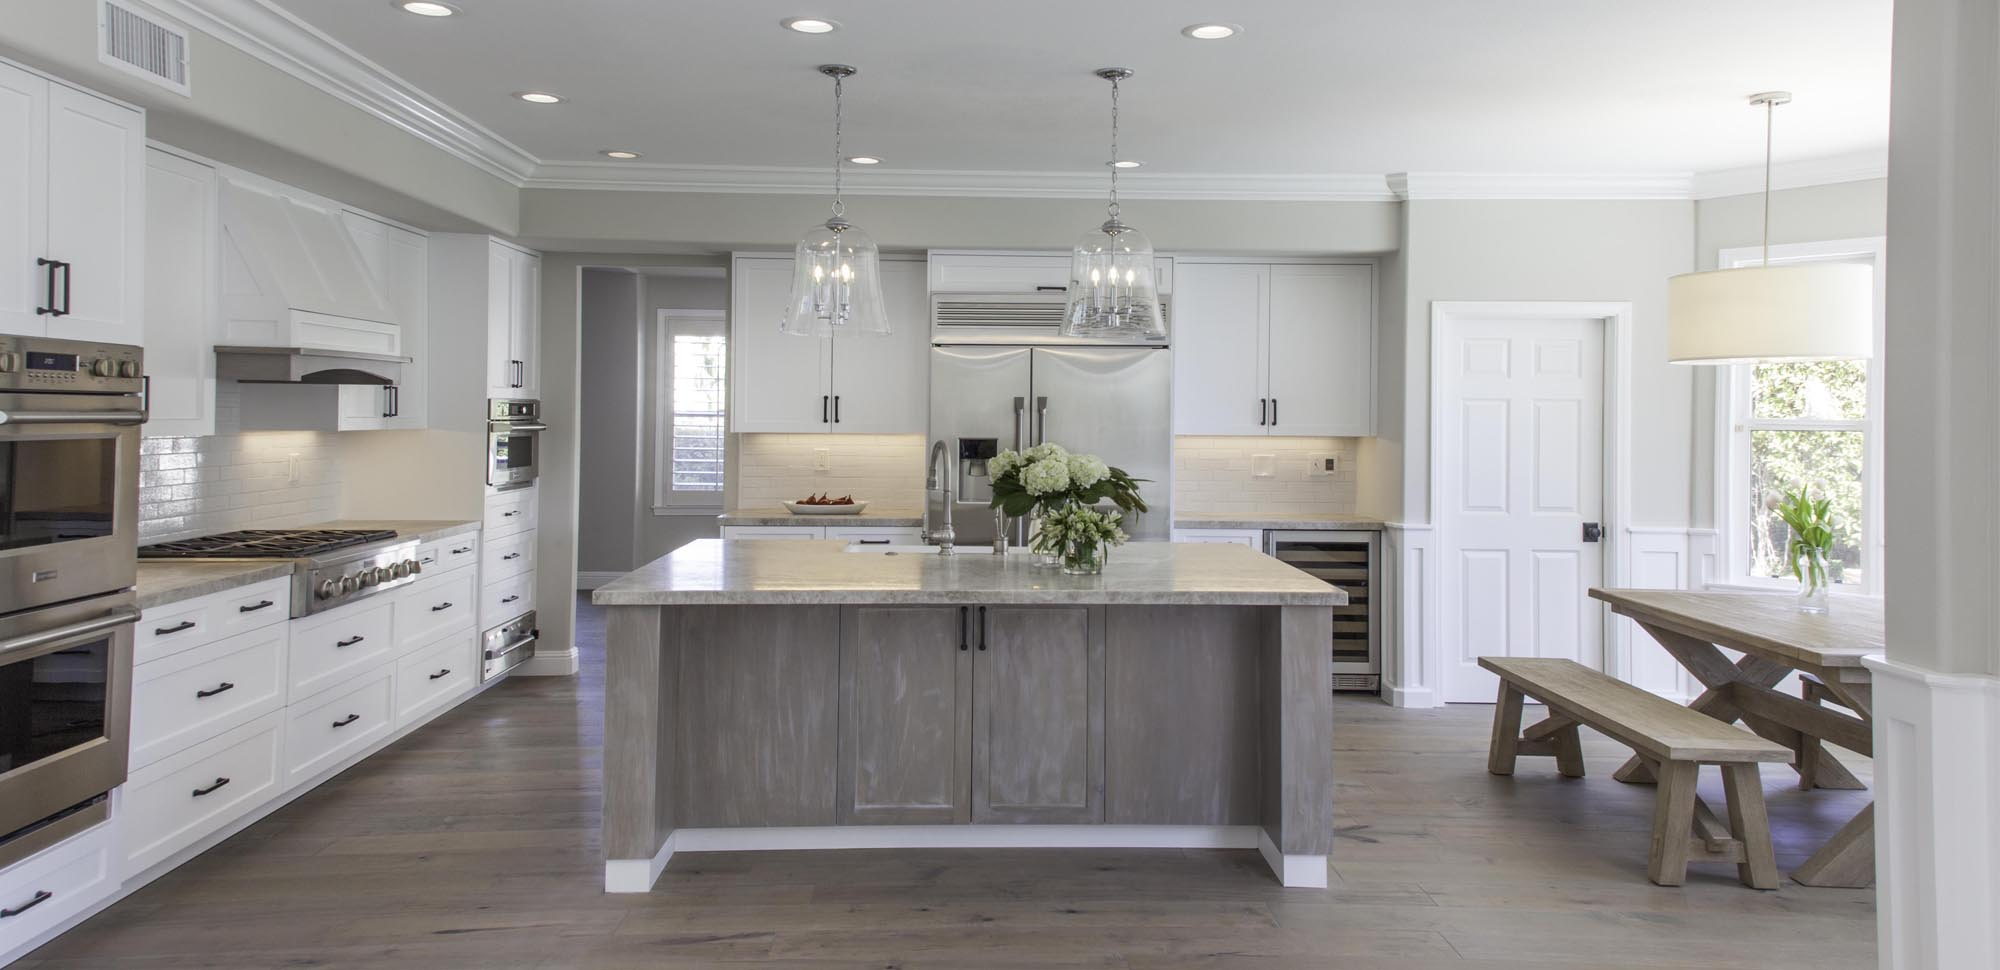 An image of a newly finished kitchen.